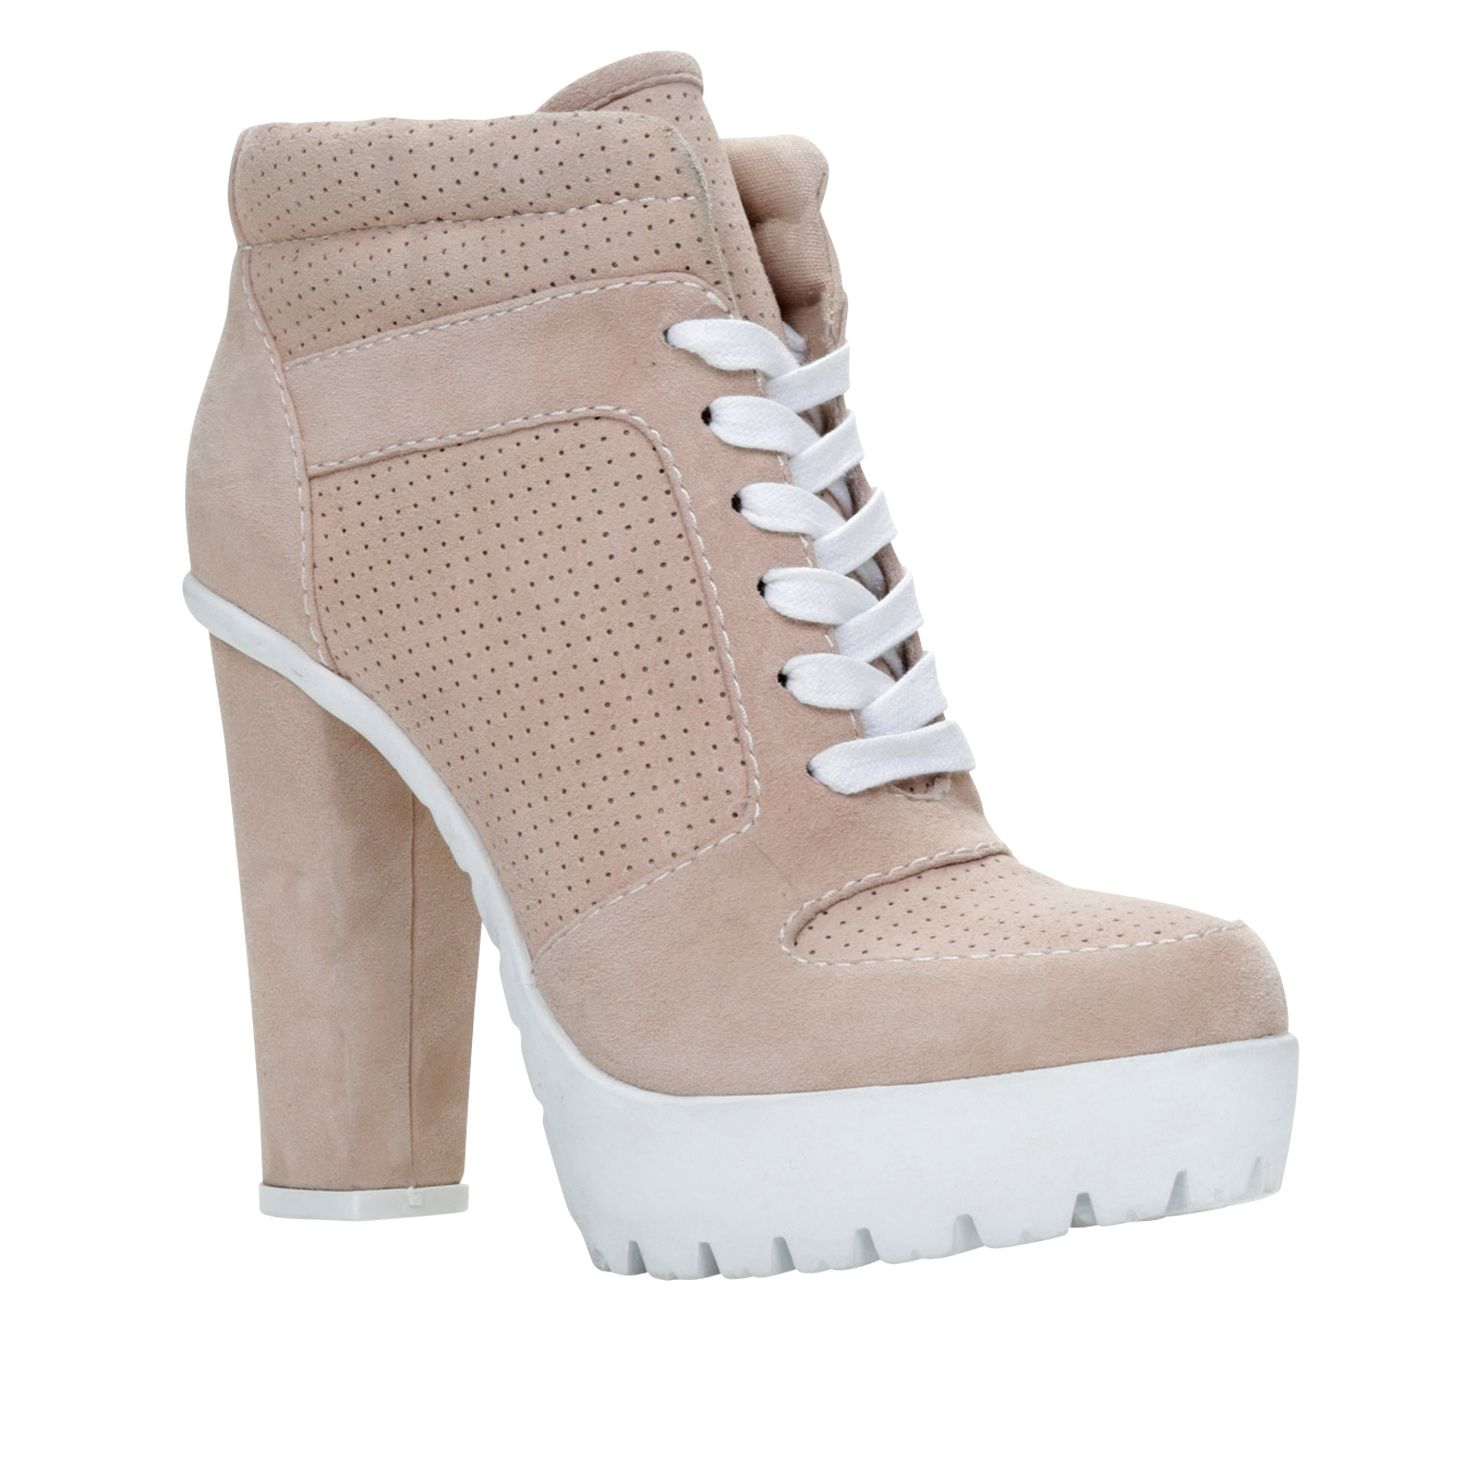 Nemyra platform lace up shoes